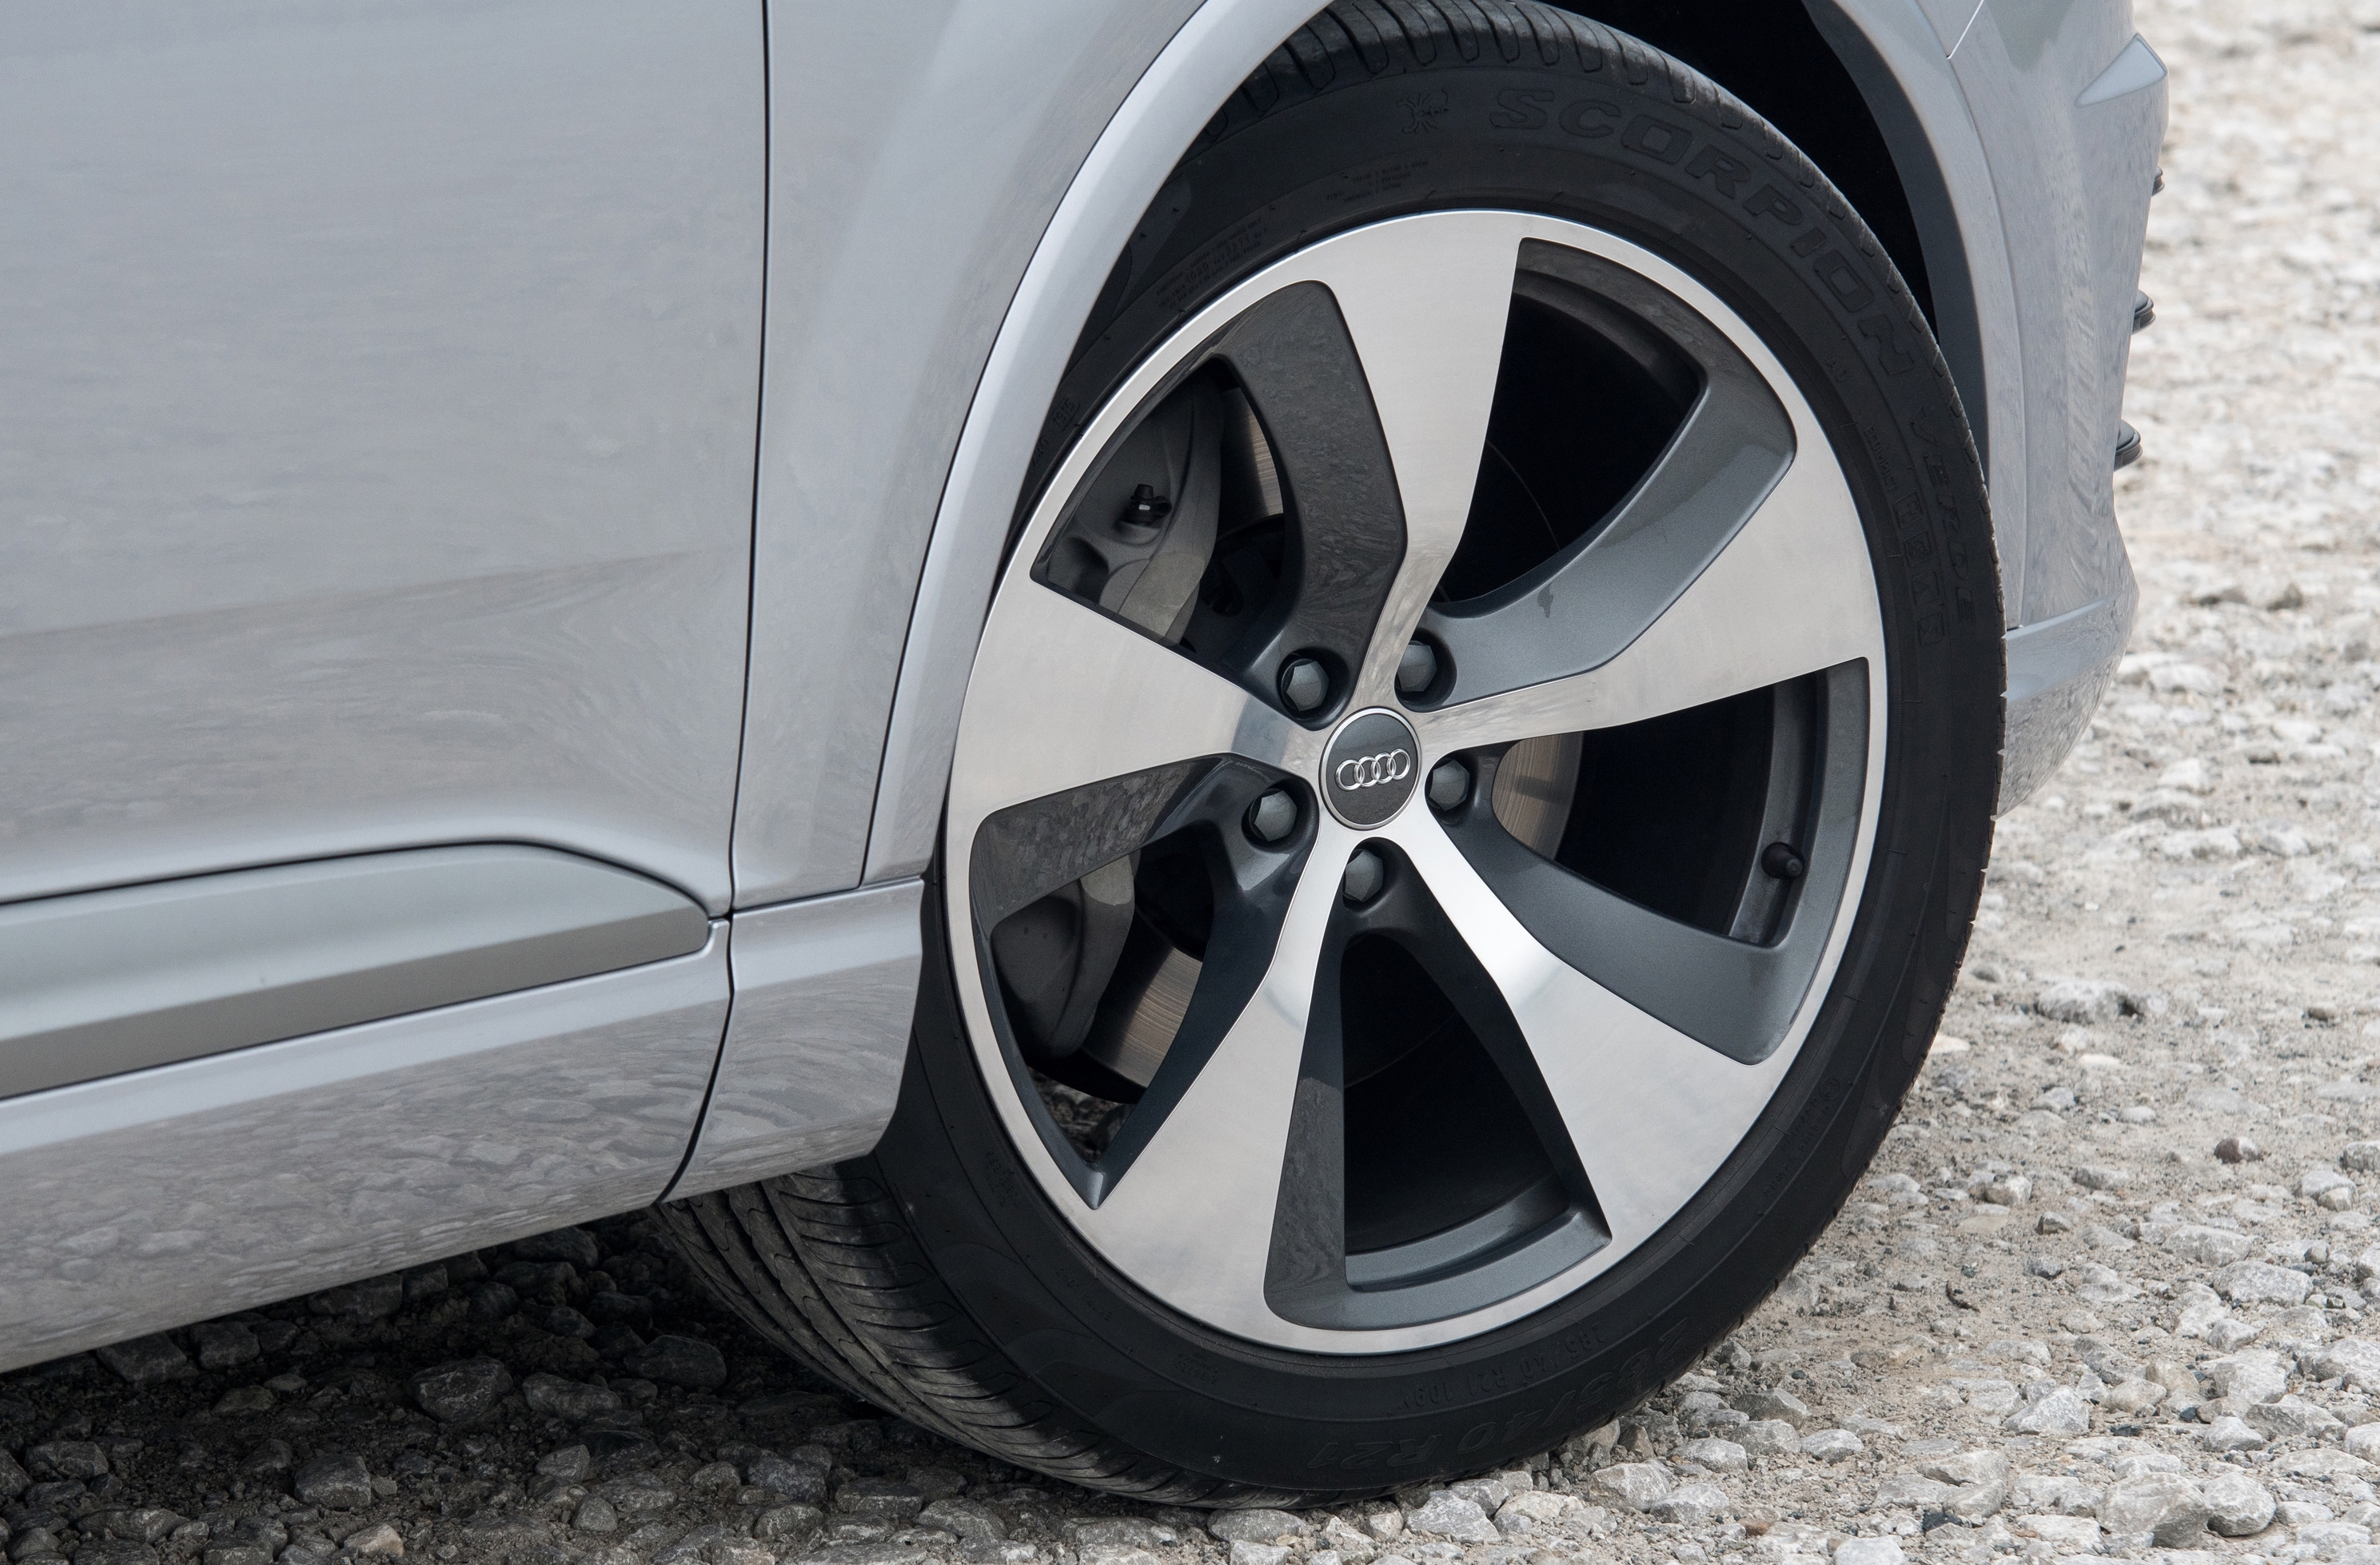 Big alloy wheels can vastly affect the way a car rides